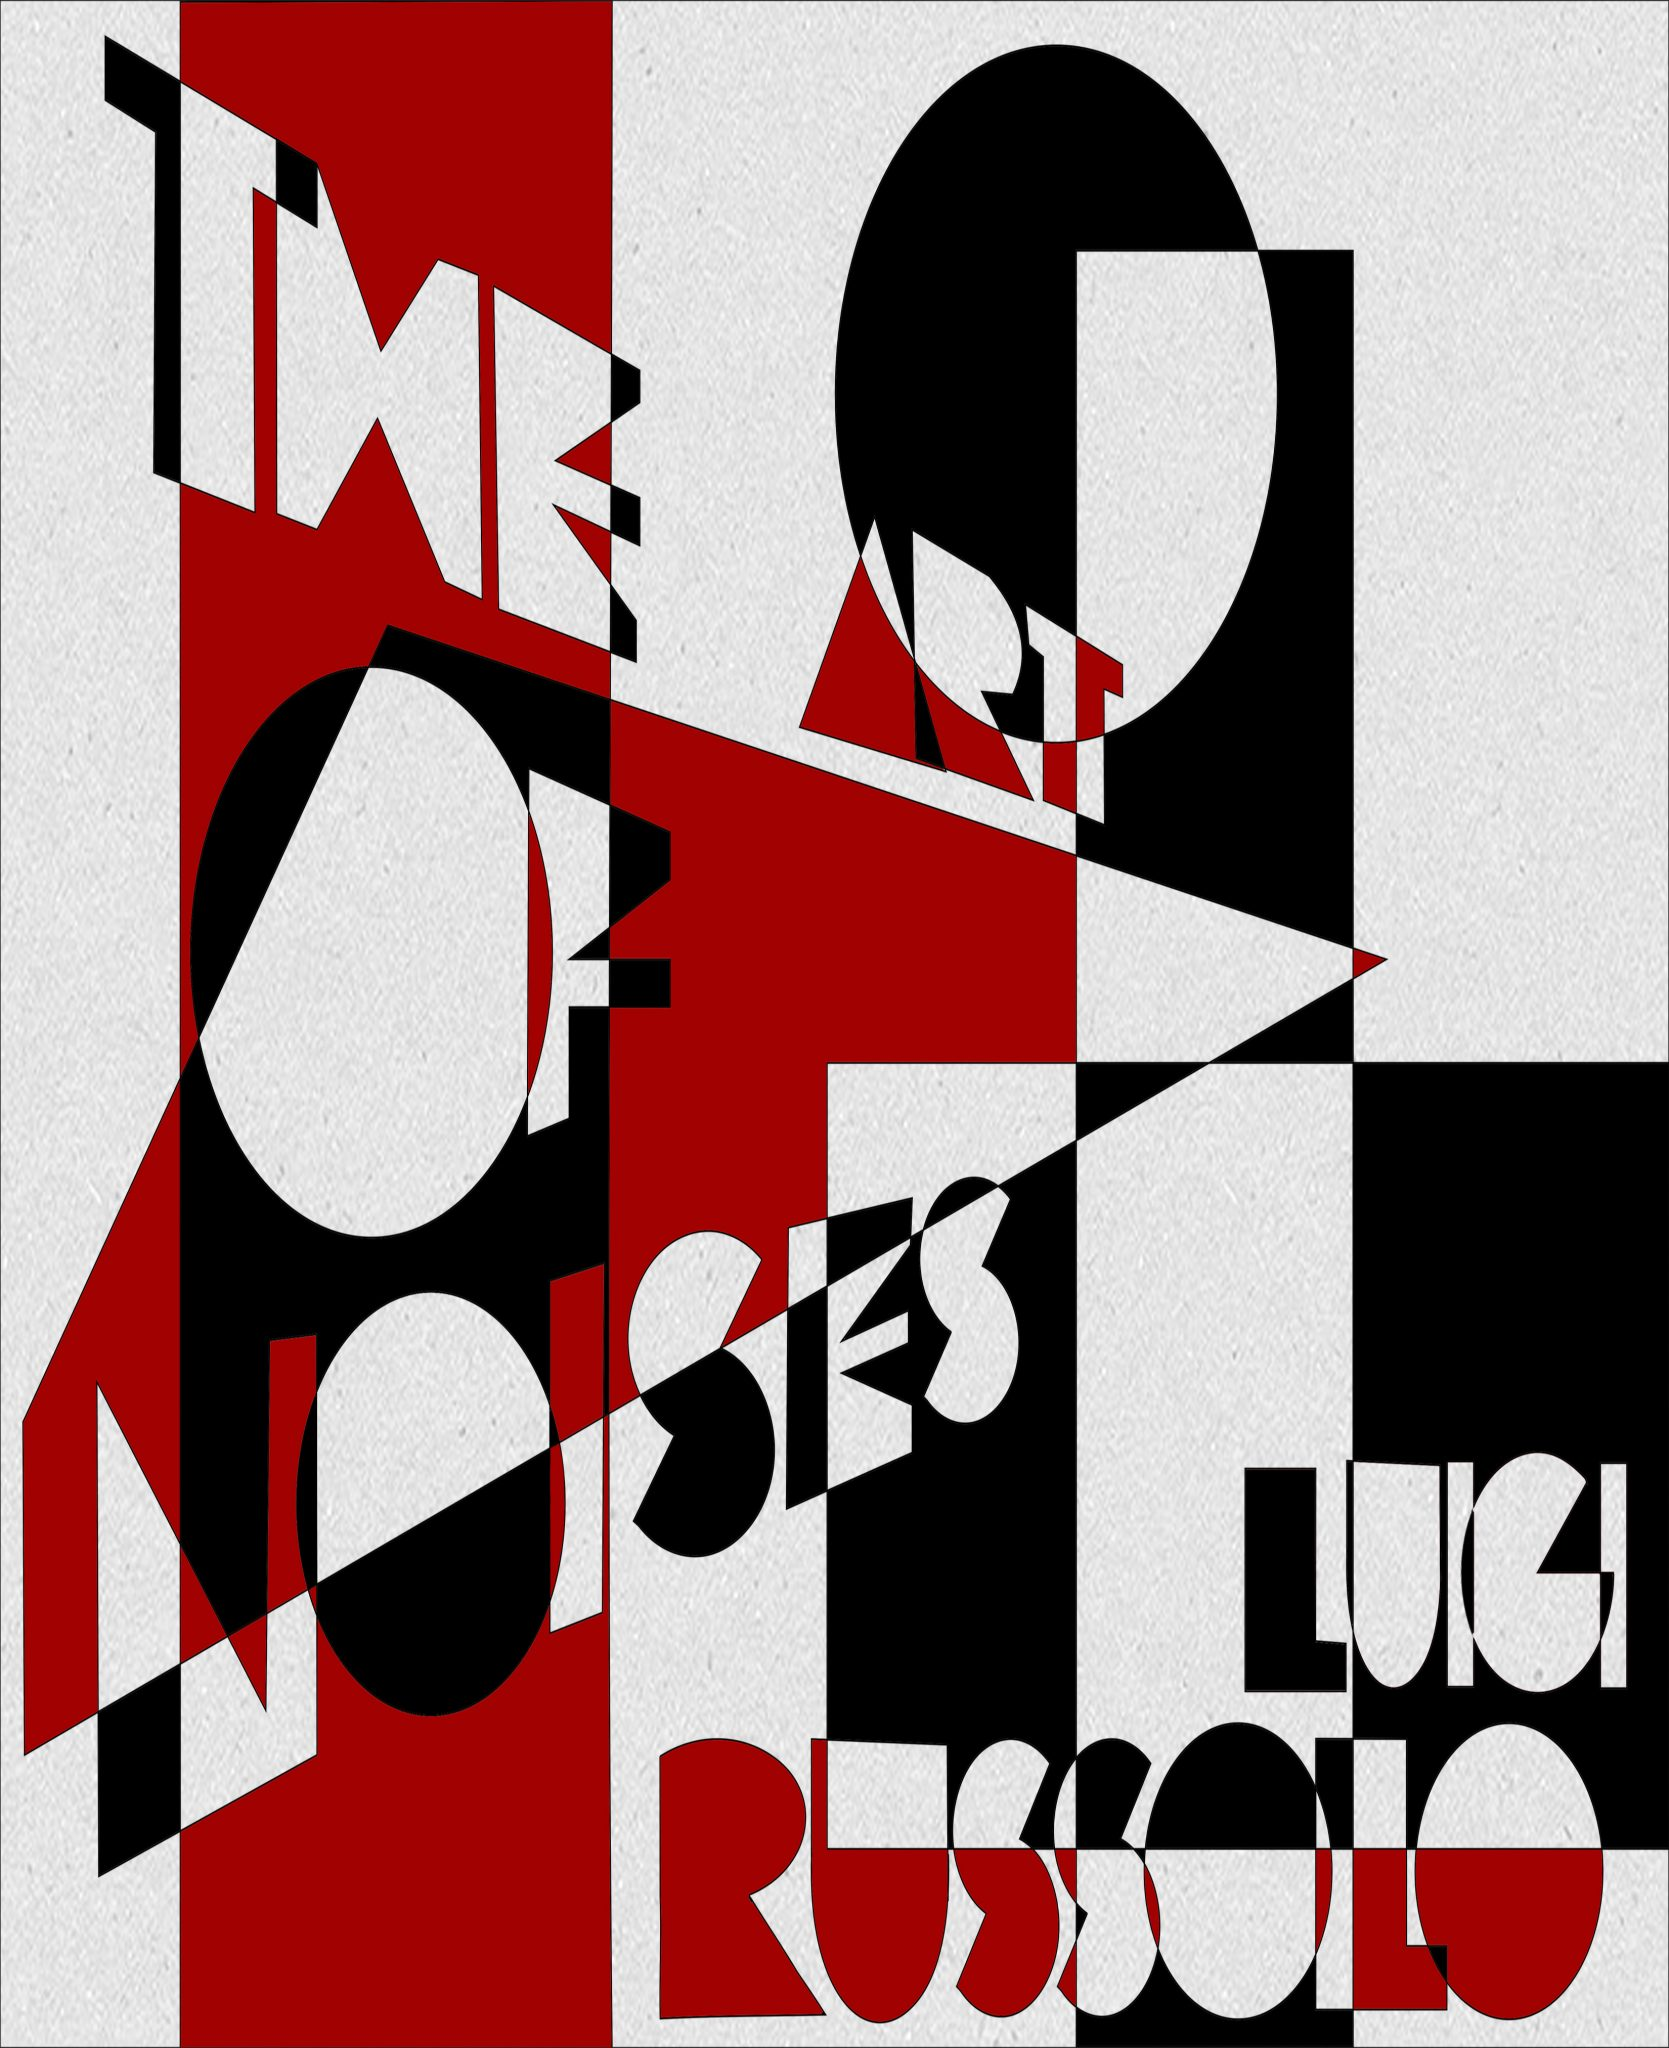 Redesigned cover for The Art of Noises, written by Luigi Russolo 1913. Designed with influence from the style of the Italian Futurist art movement.